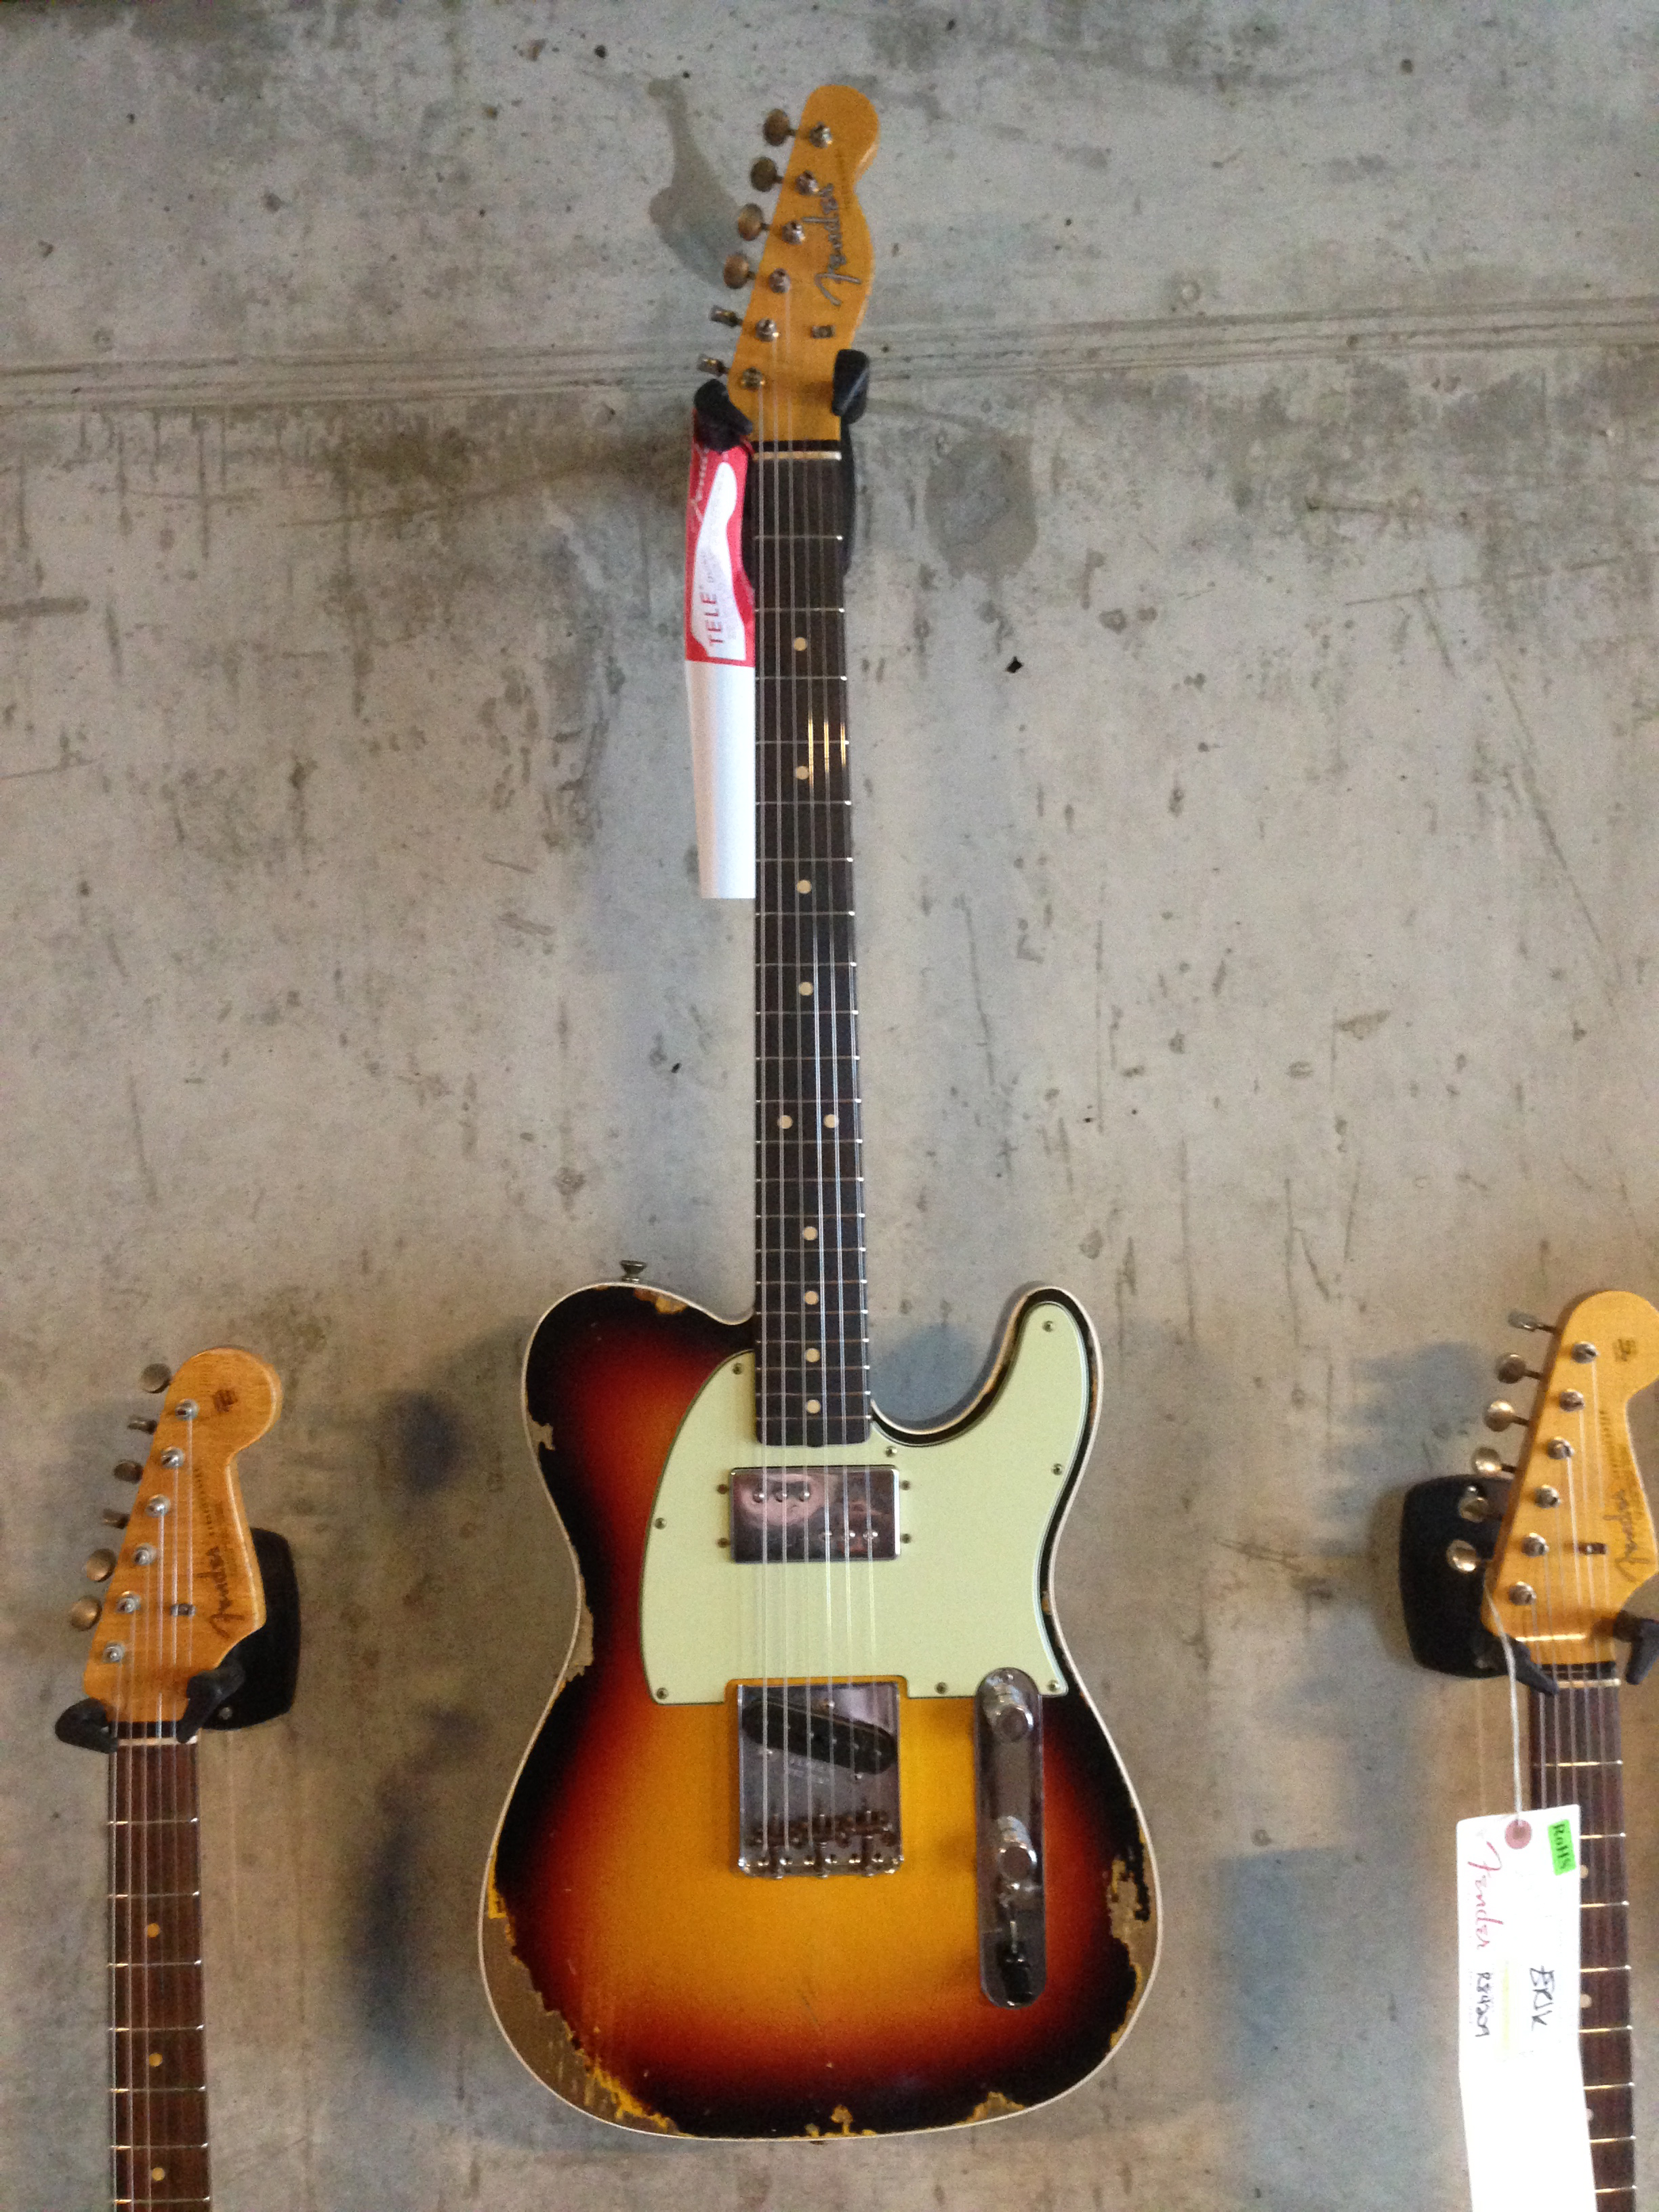 Fender Custom Shop Telecaster 63 Heavy Relic Wide Range HB Reversed